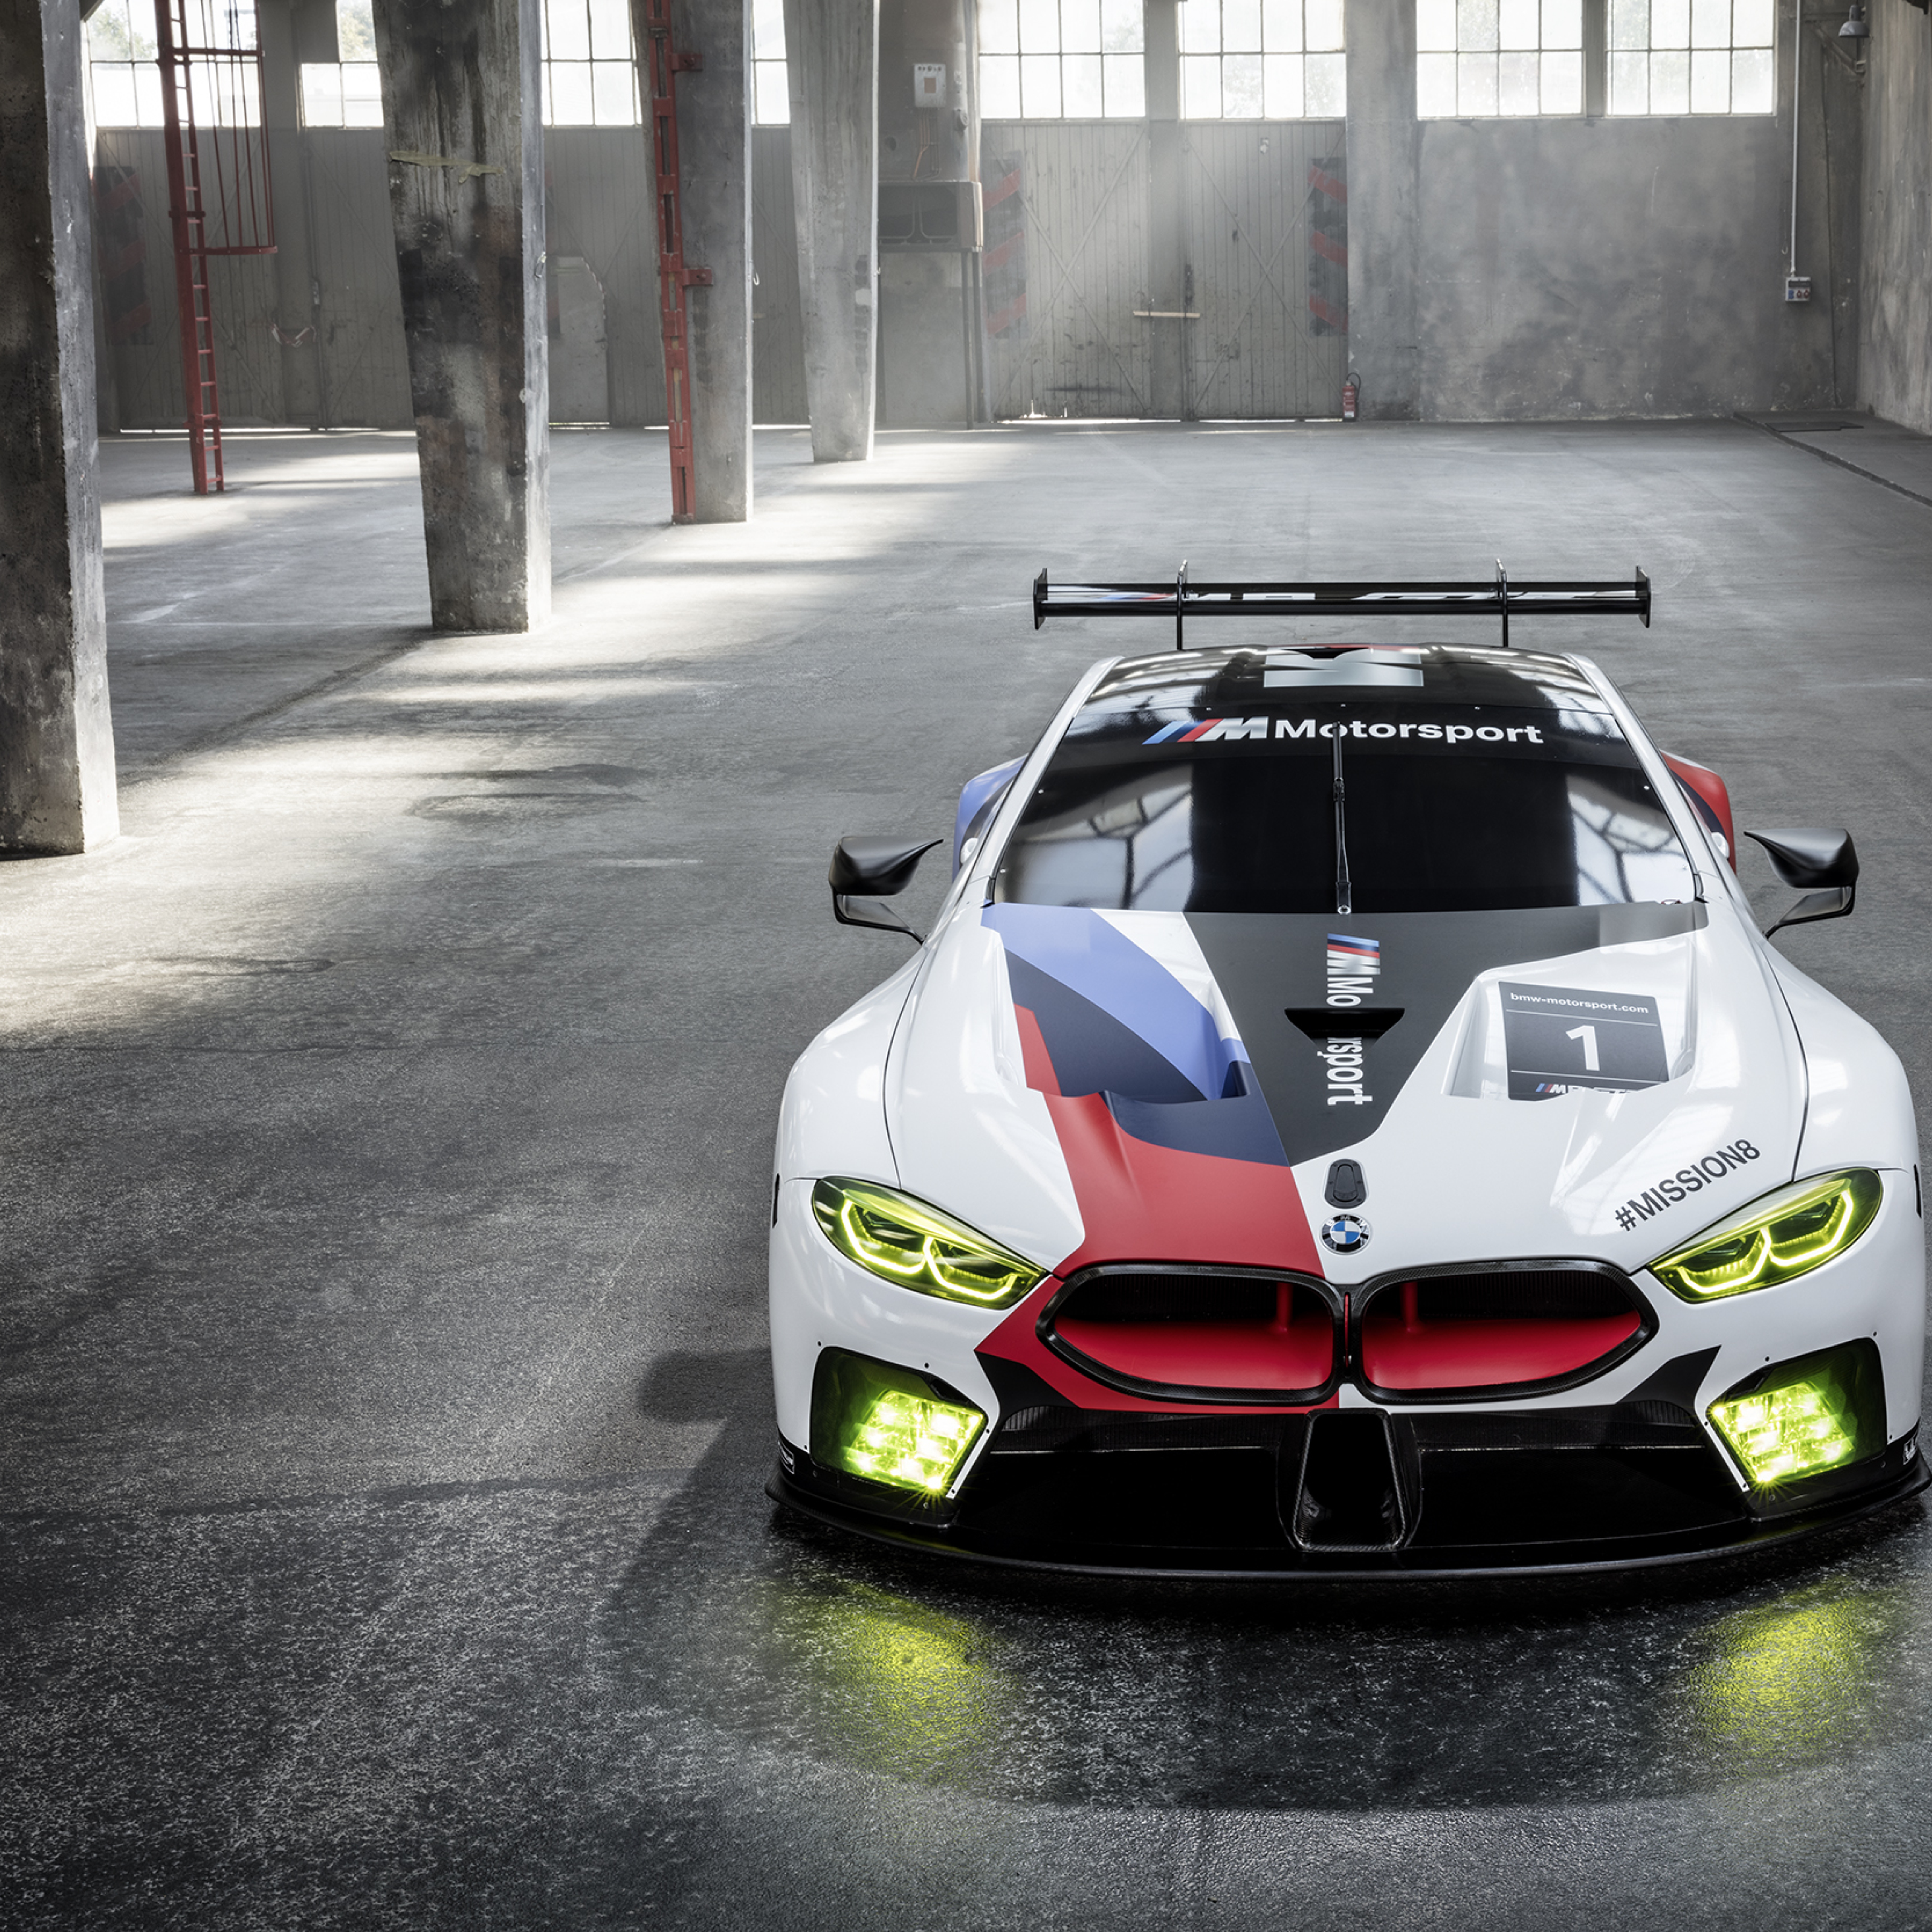 2018 Bmw M8 Gte, Full HD 2K Wallpaper